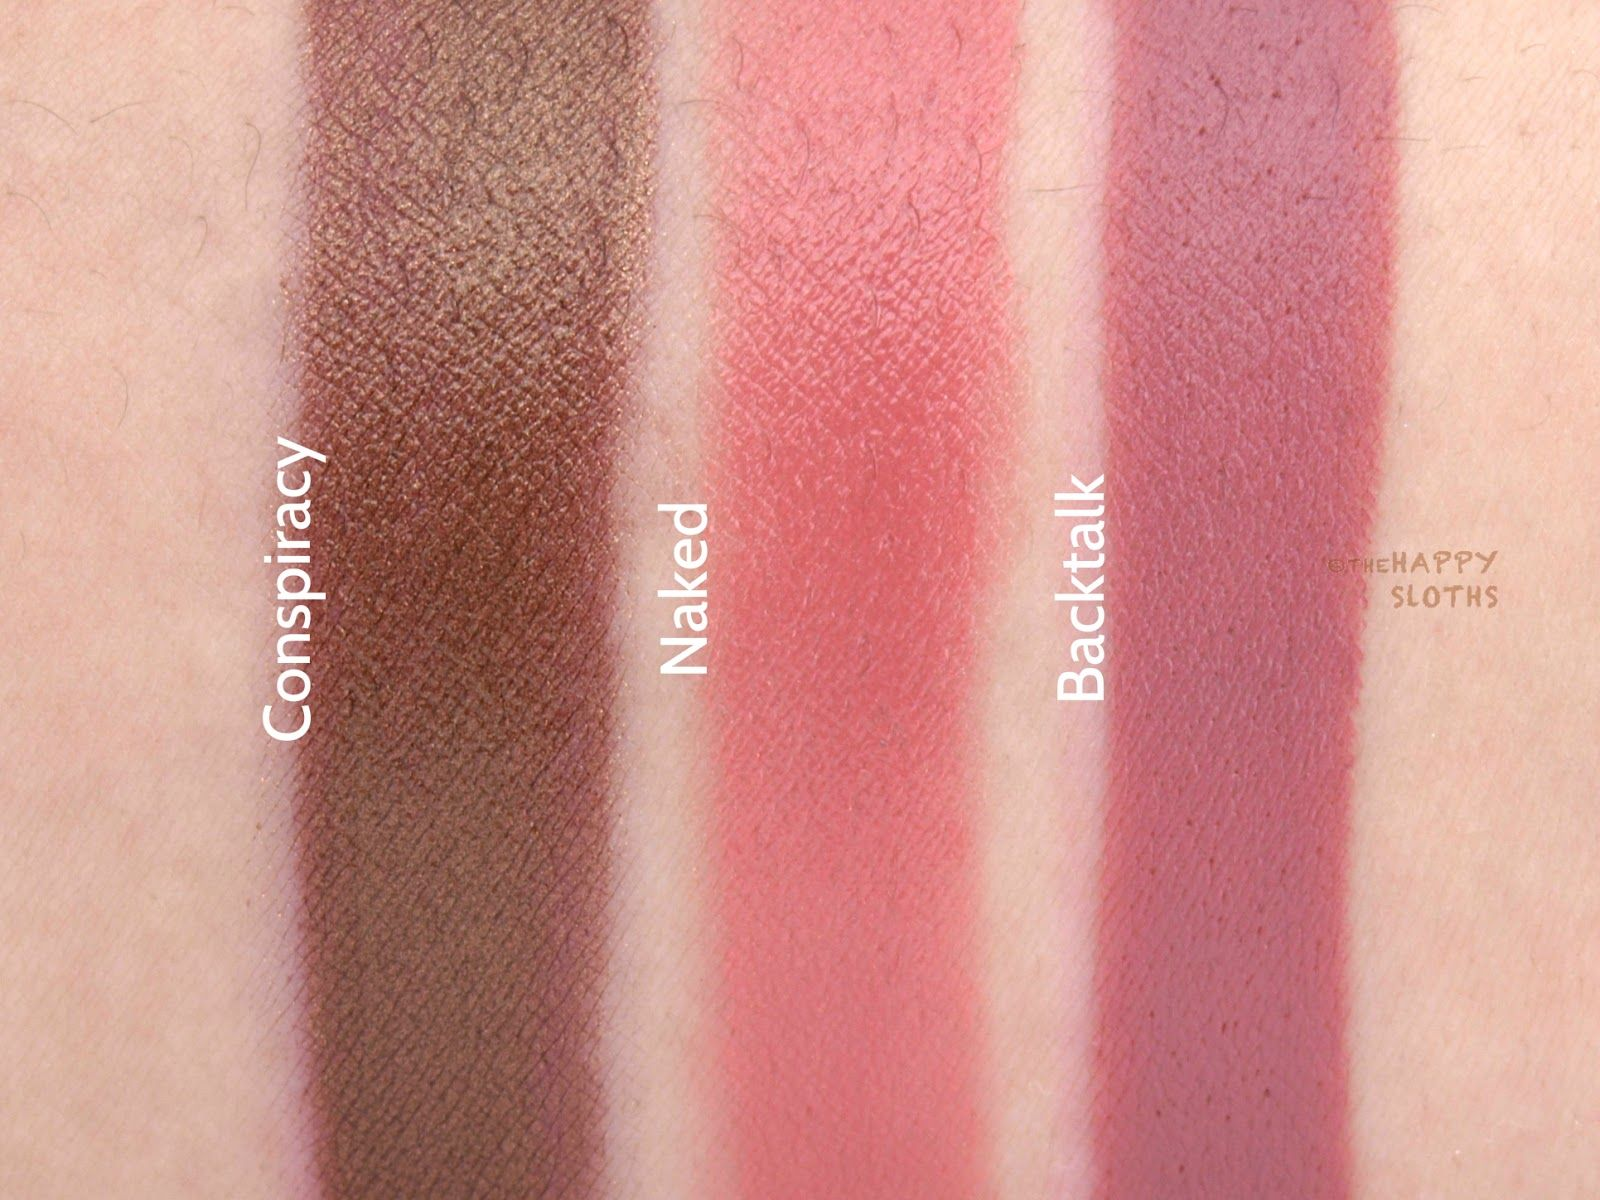 Vice Lipstick Naked Heat Capsule Collection by Urban Decay #18